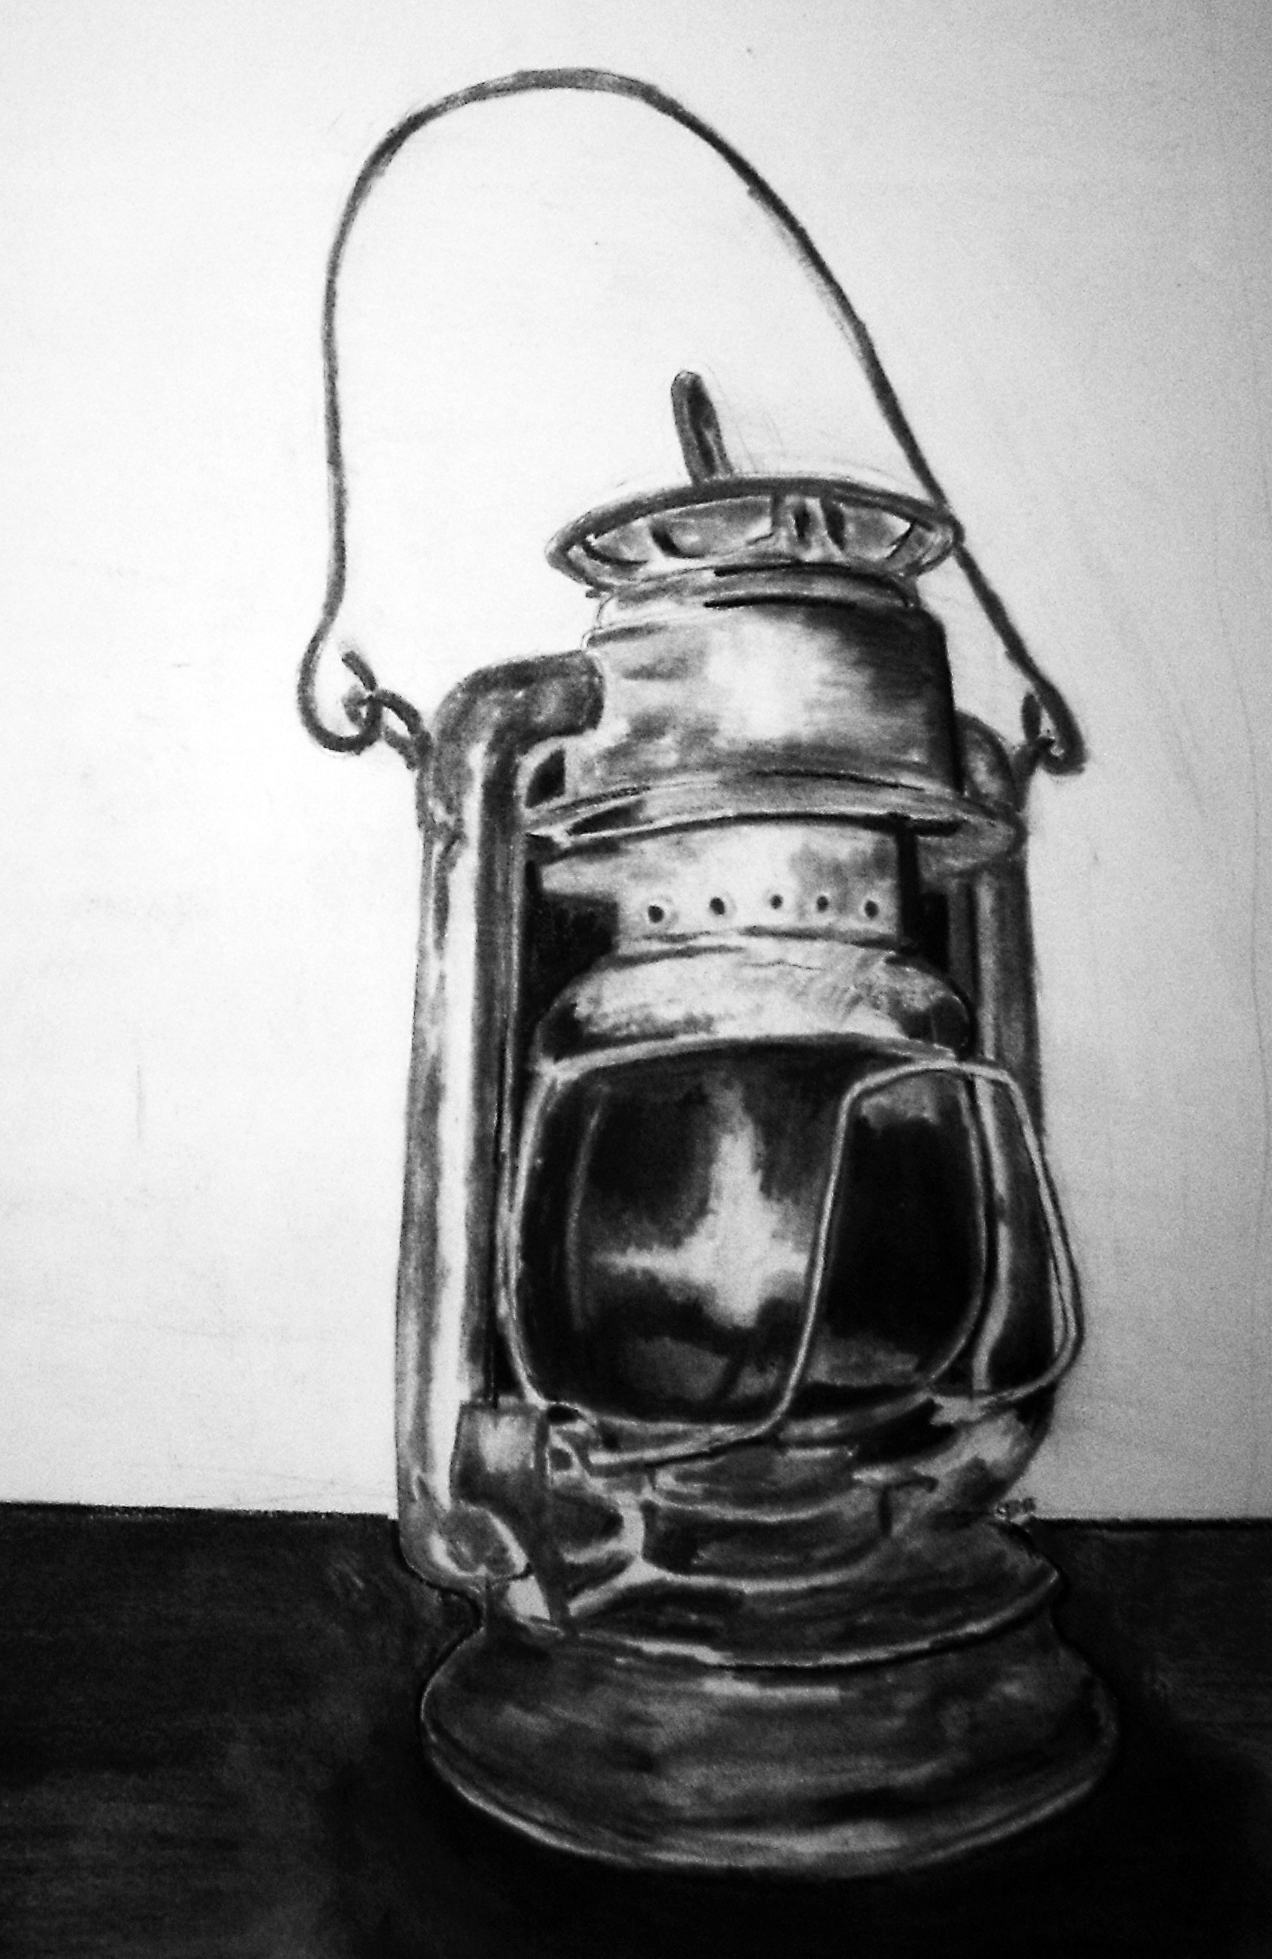 Antique Lantern Charcoal By Randomhero2069